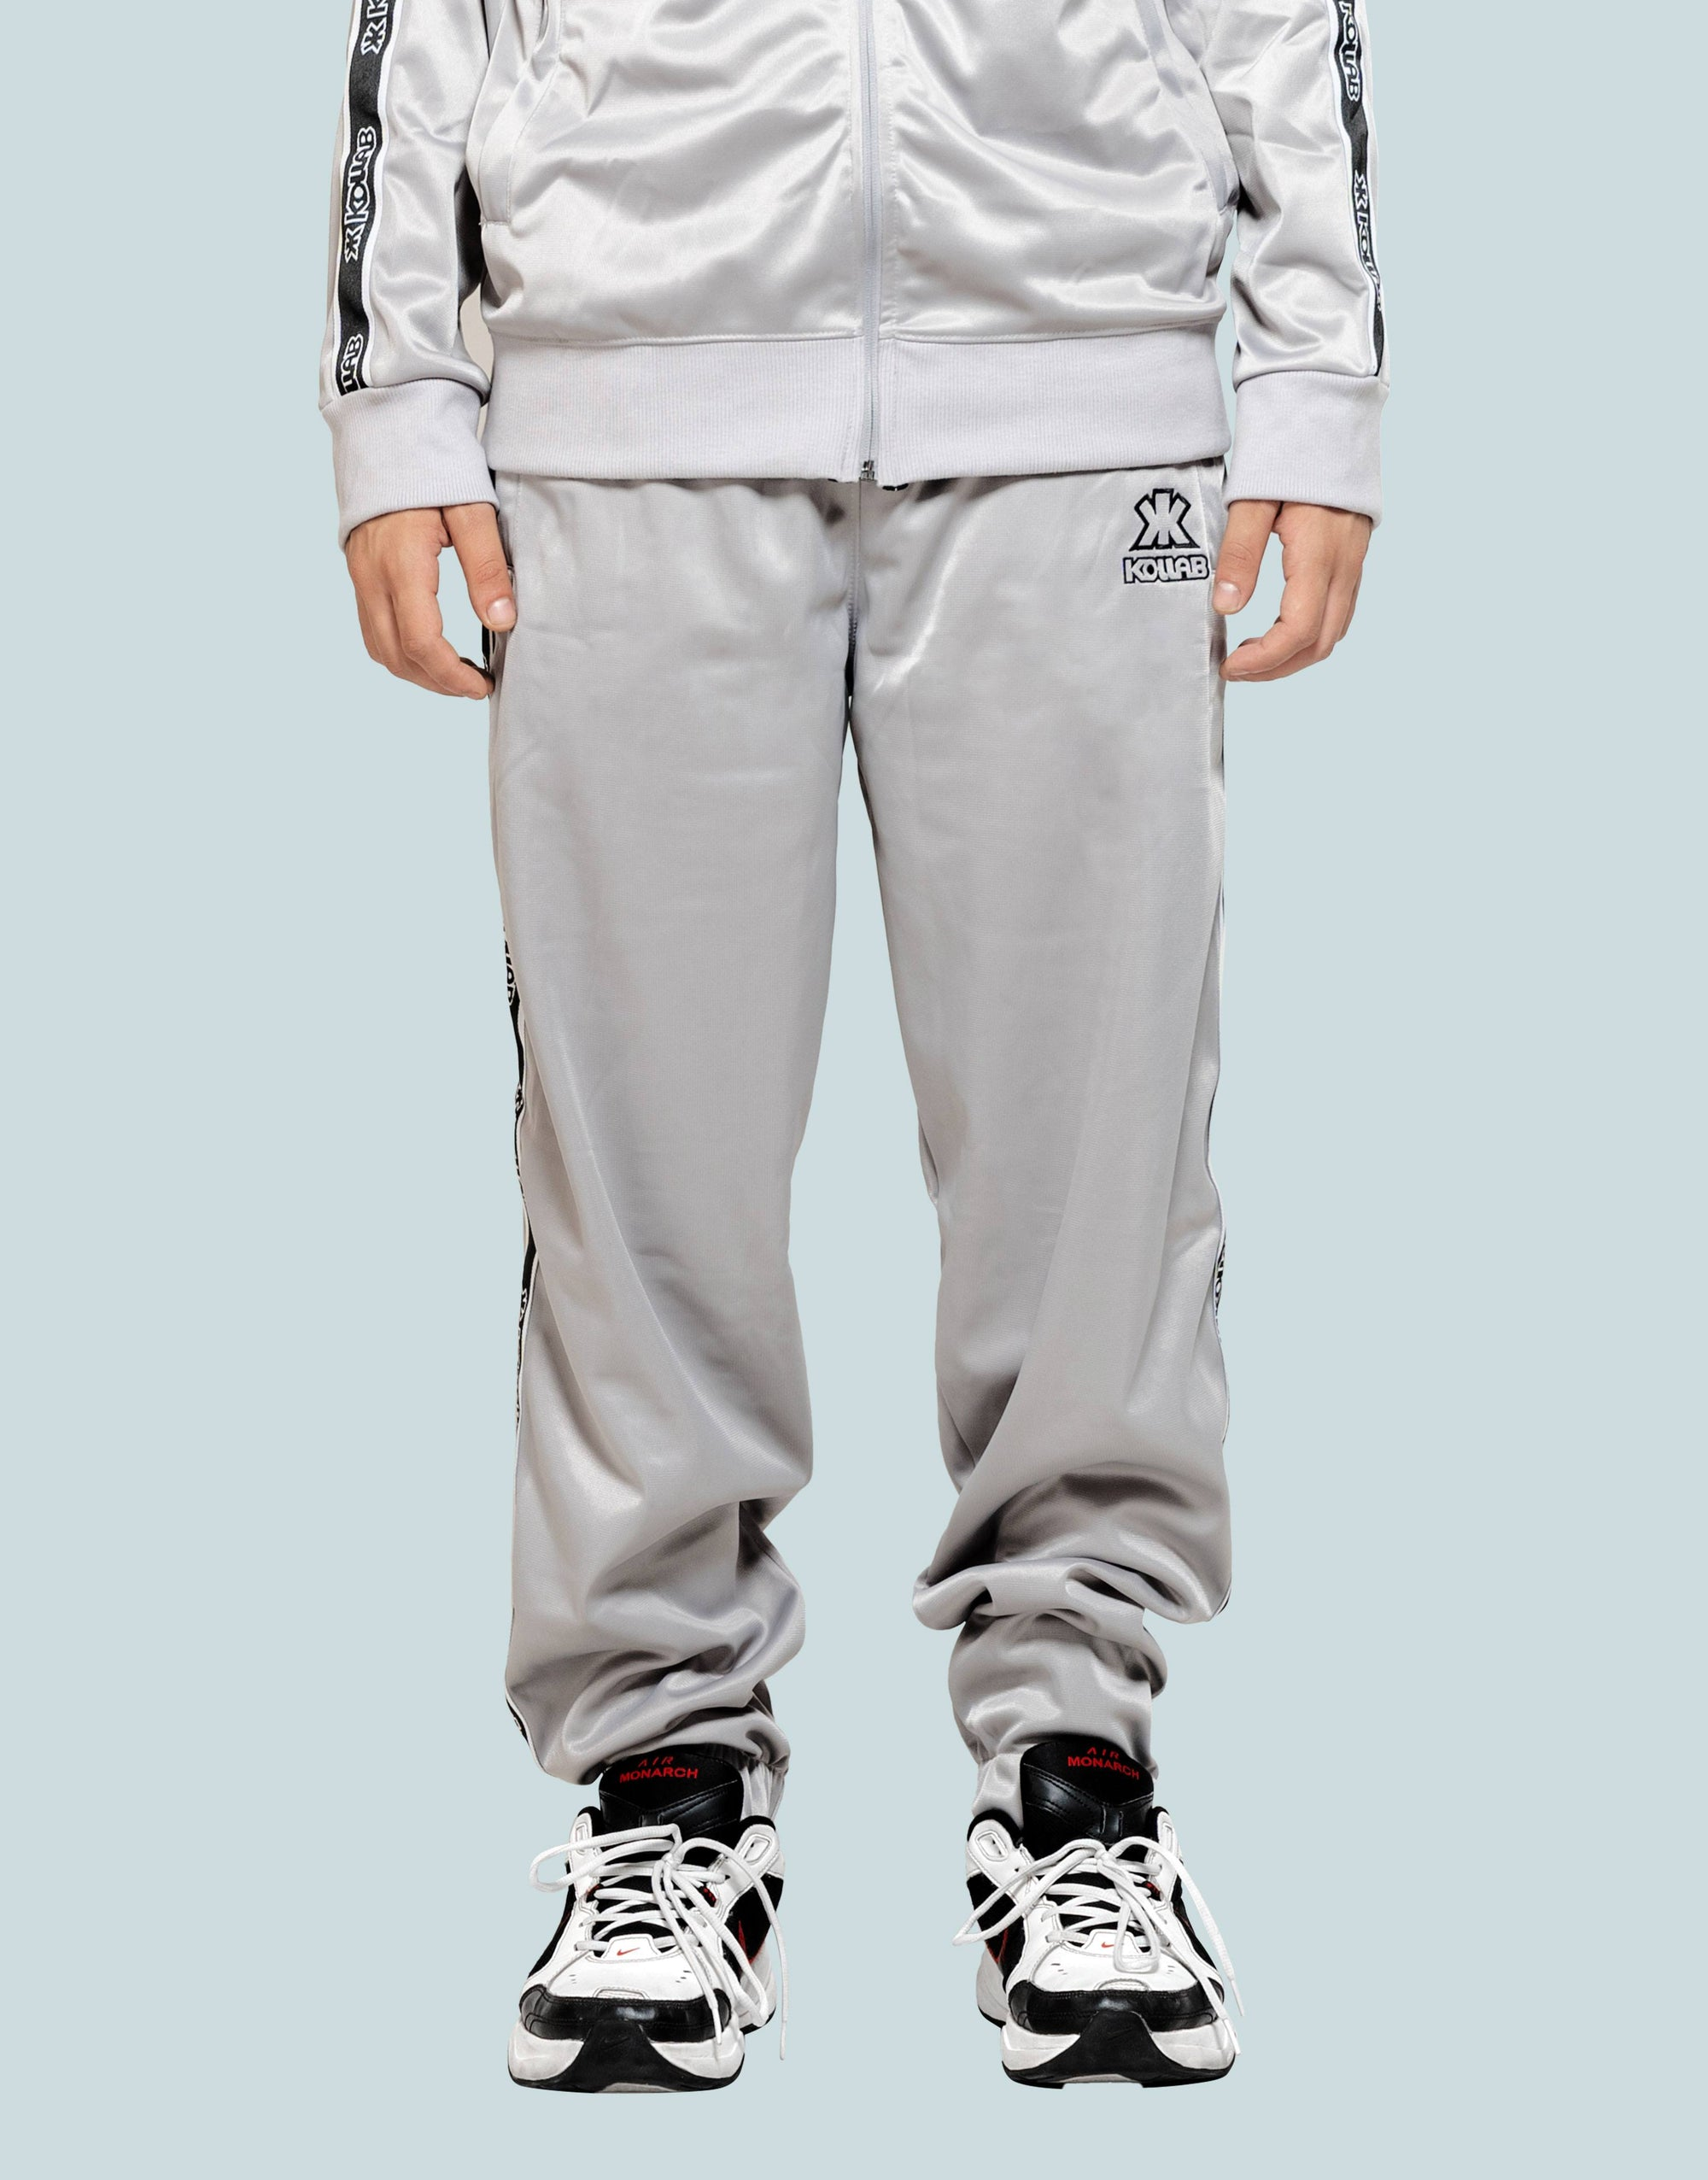 Kollab® Loose-Fit Technical Joggers - Silver-Black | Kollab Lifestyle | www.kollablifestyle.com